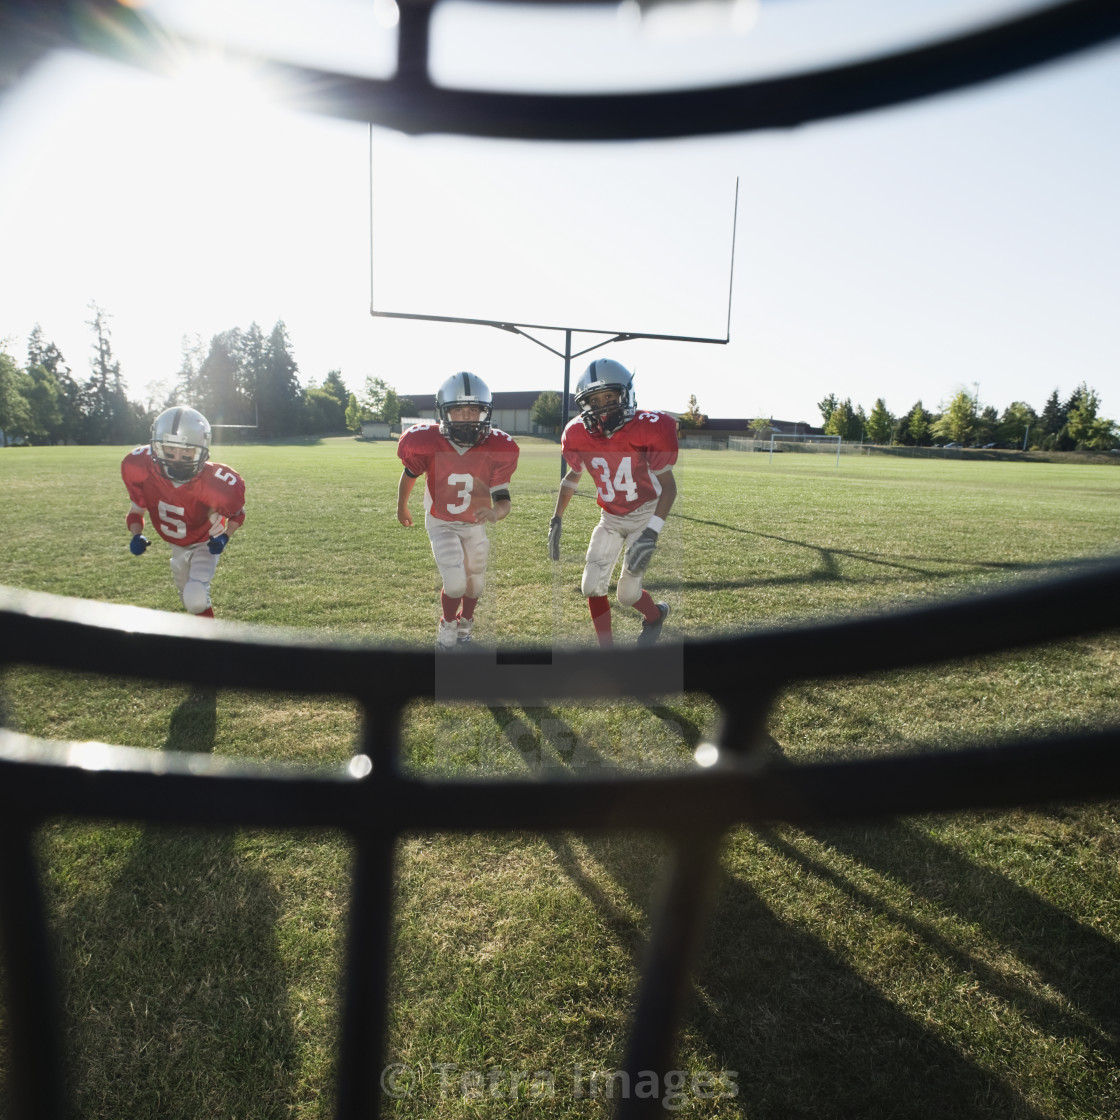 """""""View of football players and field from inside helmet"""" stock image"""